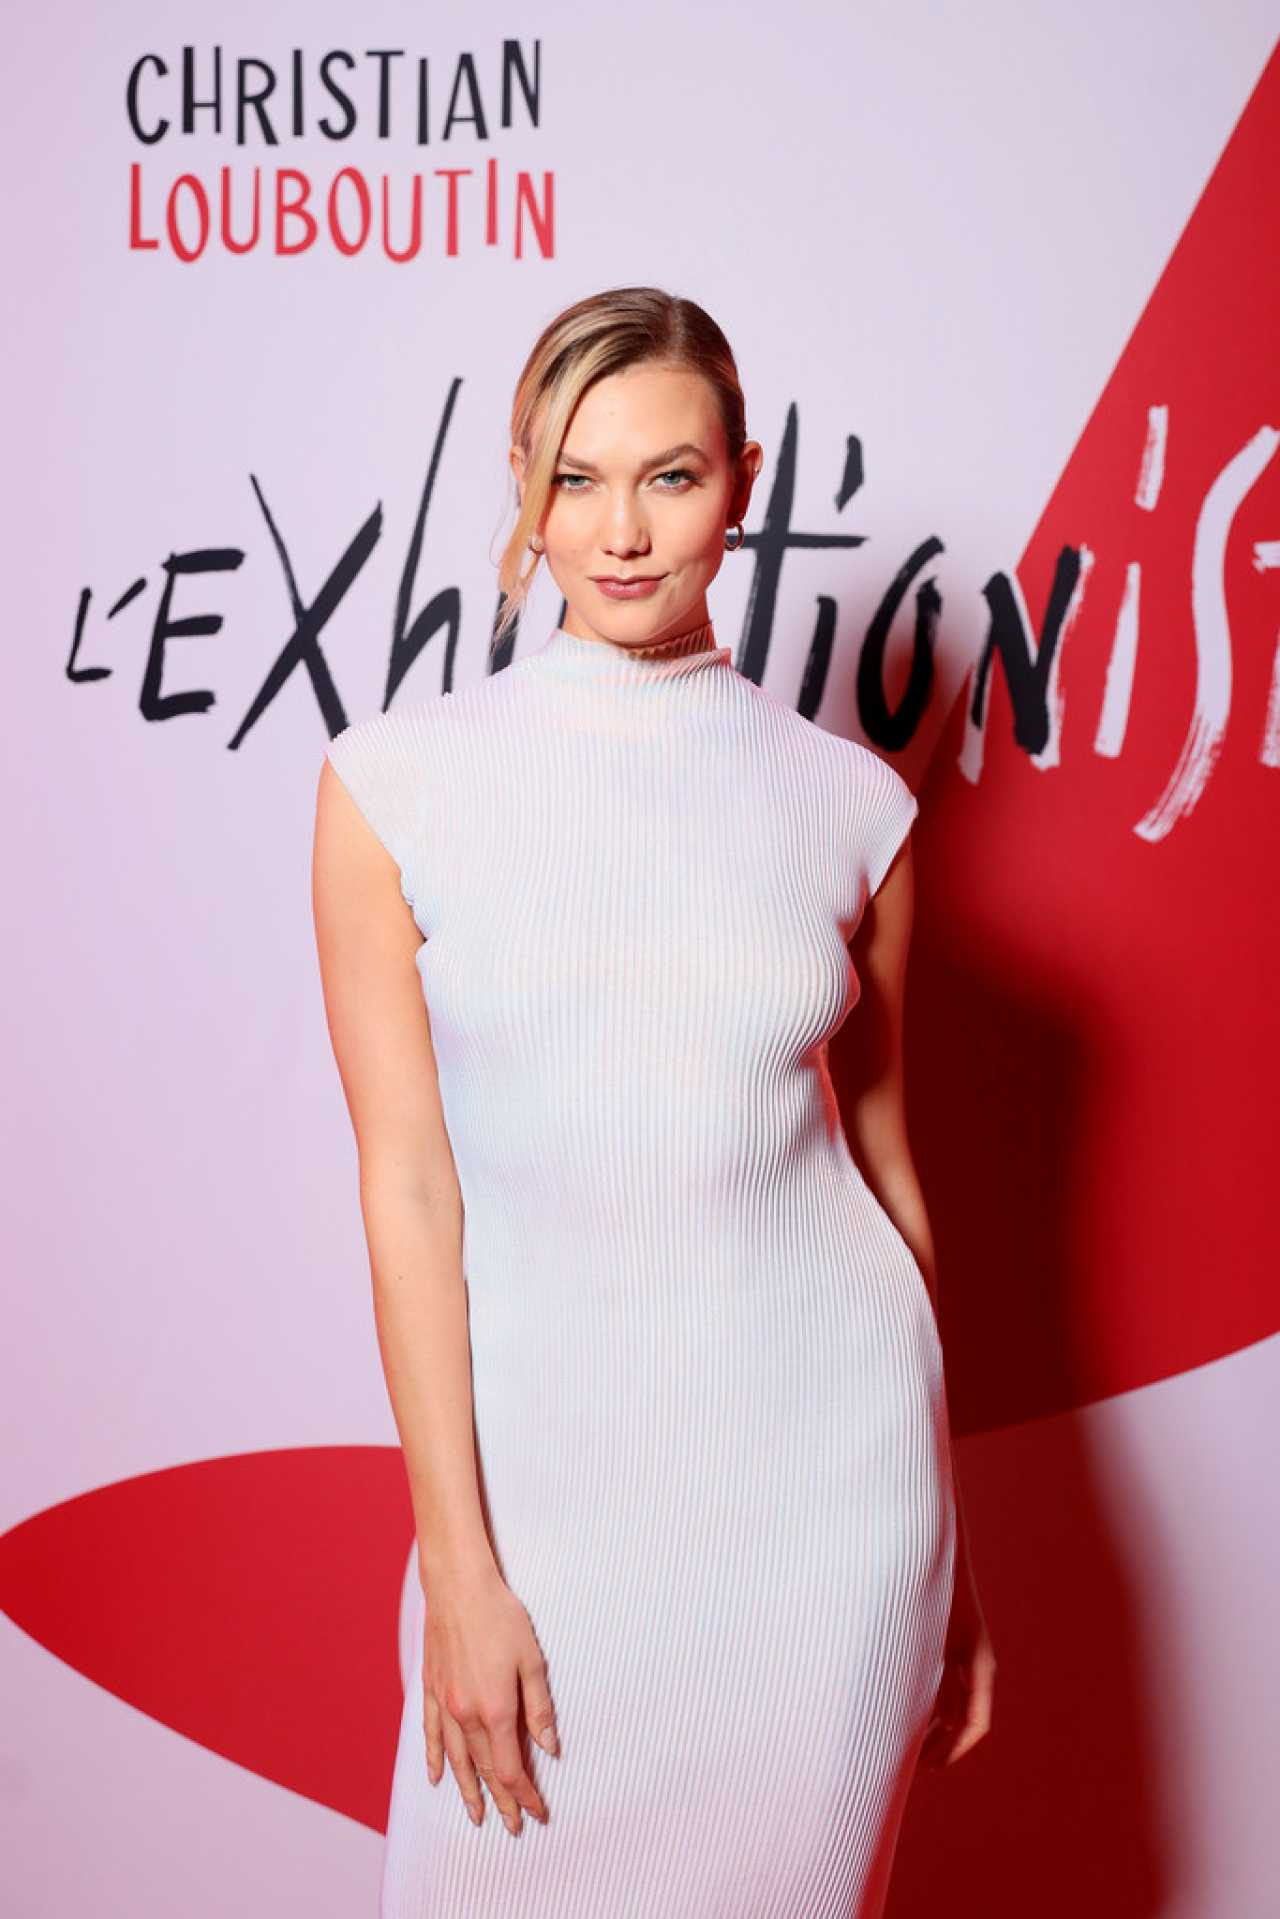 Karlie Kloss - L'Exibition by Christian Louboutin opening in Paris